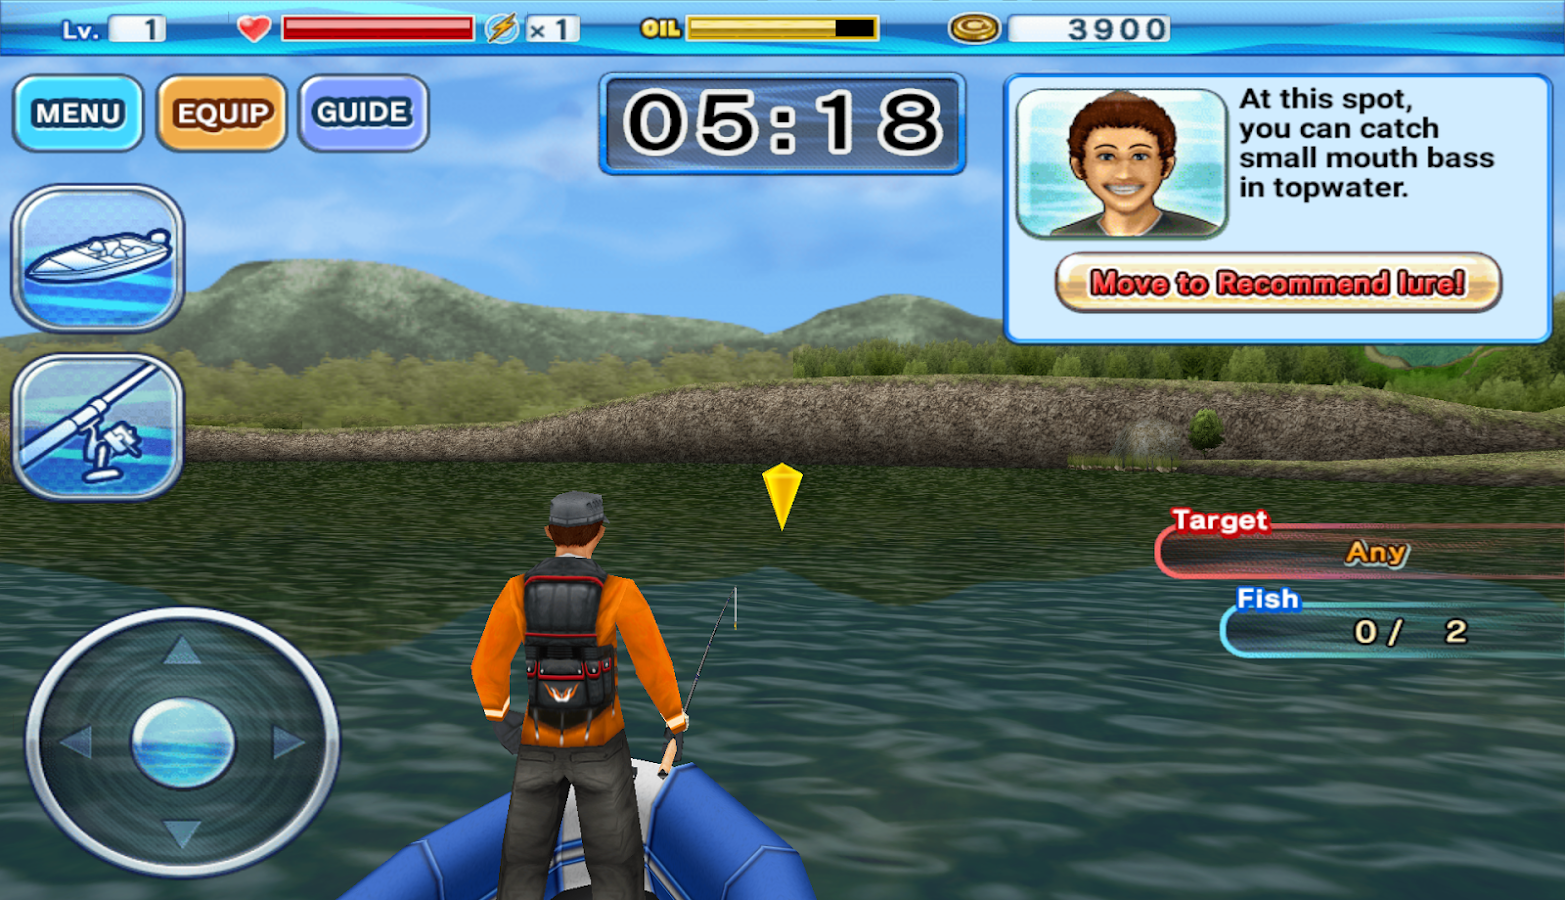 Bass 39 n 39 guide lure fishing android apps on google play for Fishing game android